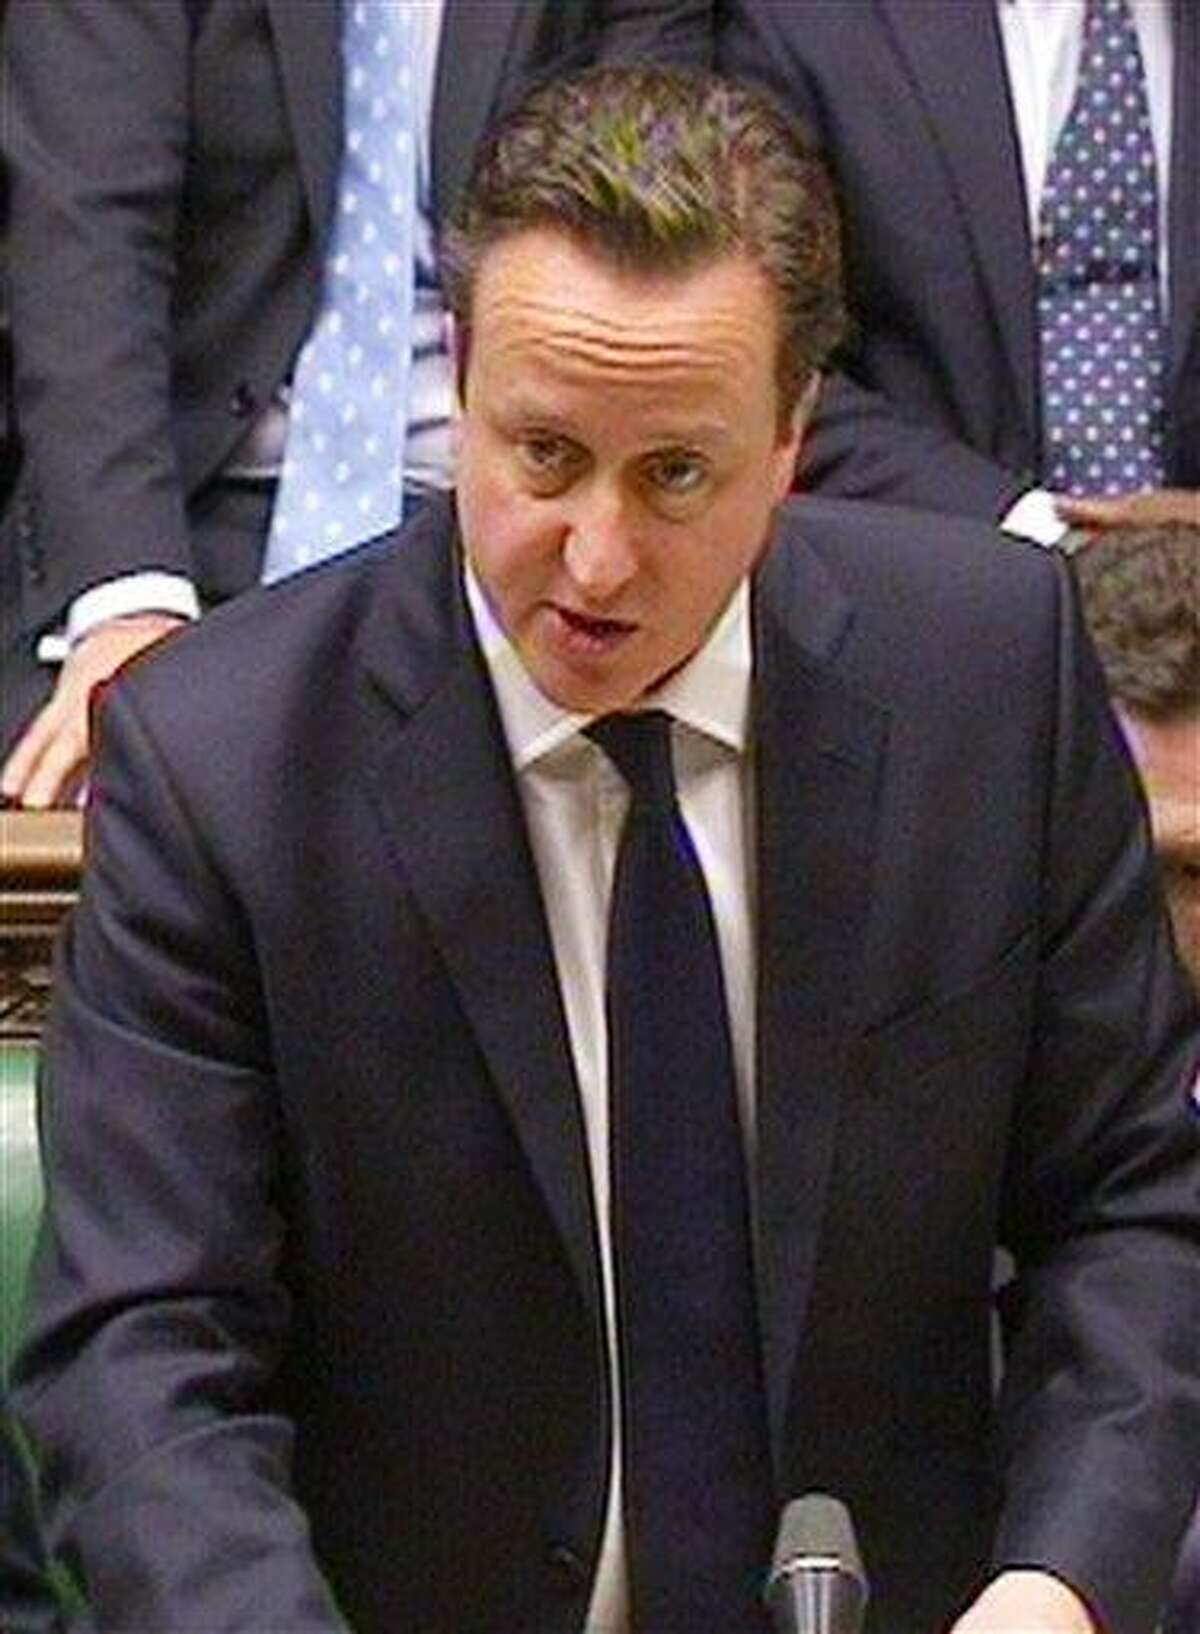 Britain's Prime Minister David Cameron speaking to the House of Commons in London in this image taken from TV Friday , where the prime minister spoke about the kidnap situation in Algeria. AP Photo